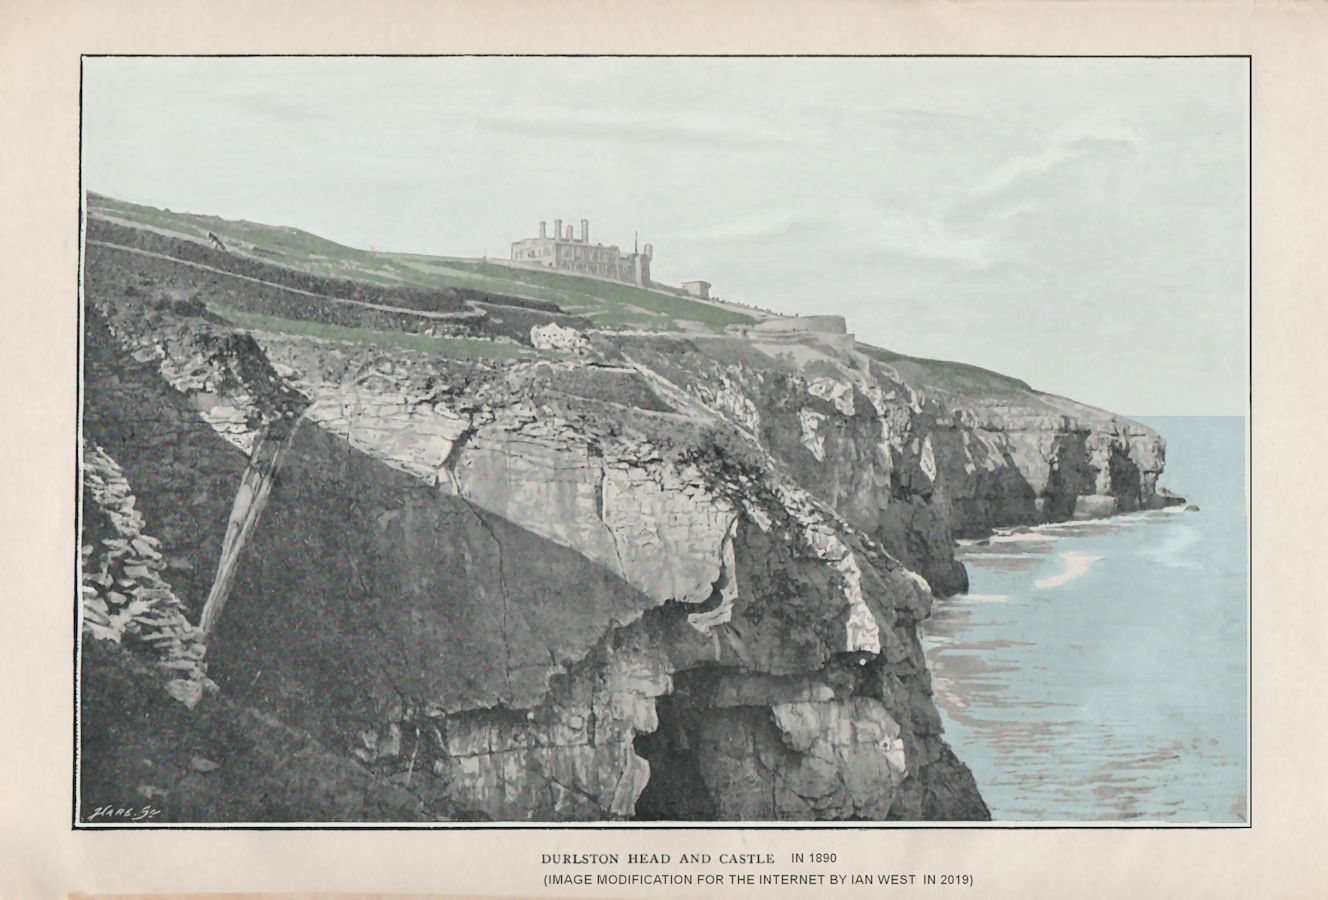 Durlston Head, with Durlston Castle, as photographed in 1890, original image, modified, smoothed and partially coloured for the internet by Ian West, 2019